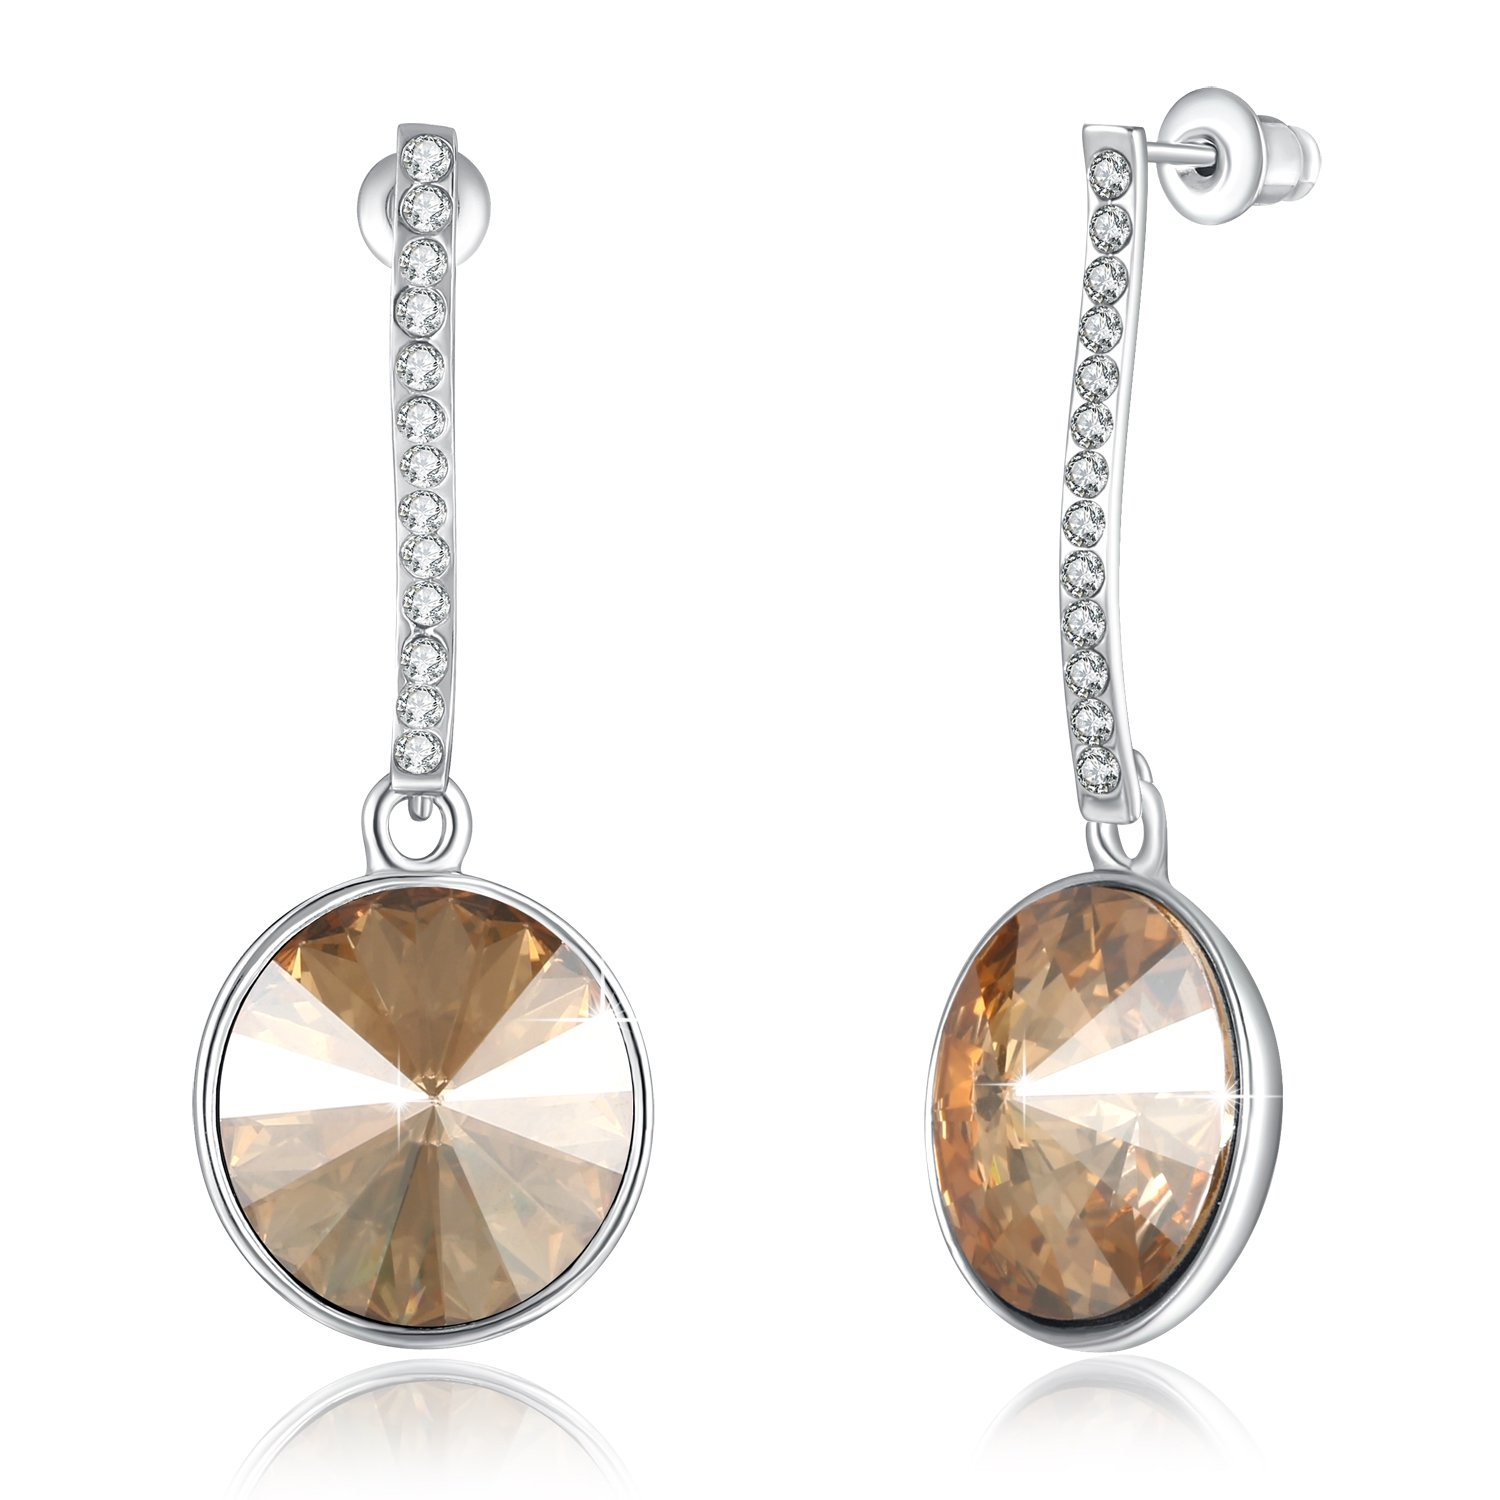 PLATO H Pretty Magic Earrings Cute Round Crystal Earrings Round Drop Dangle Earring with Swarovski Crystals Round Champagne Earring